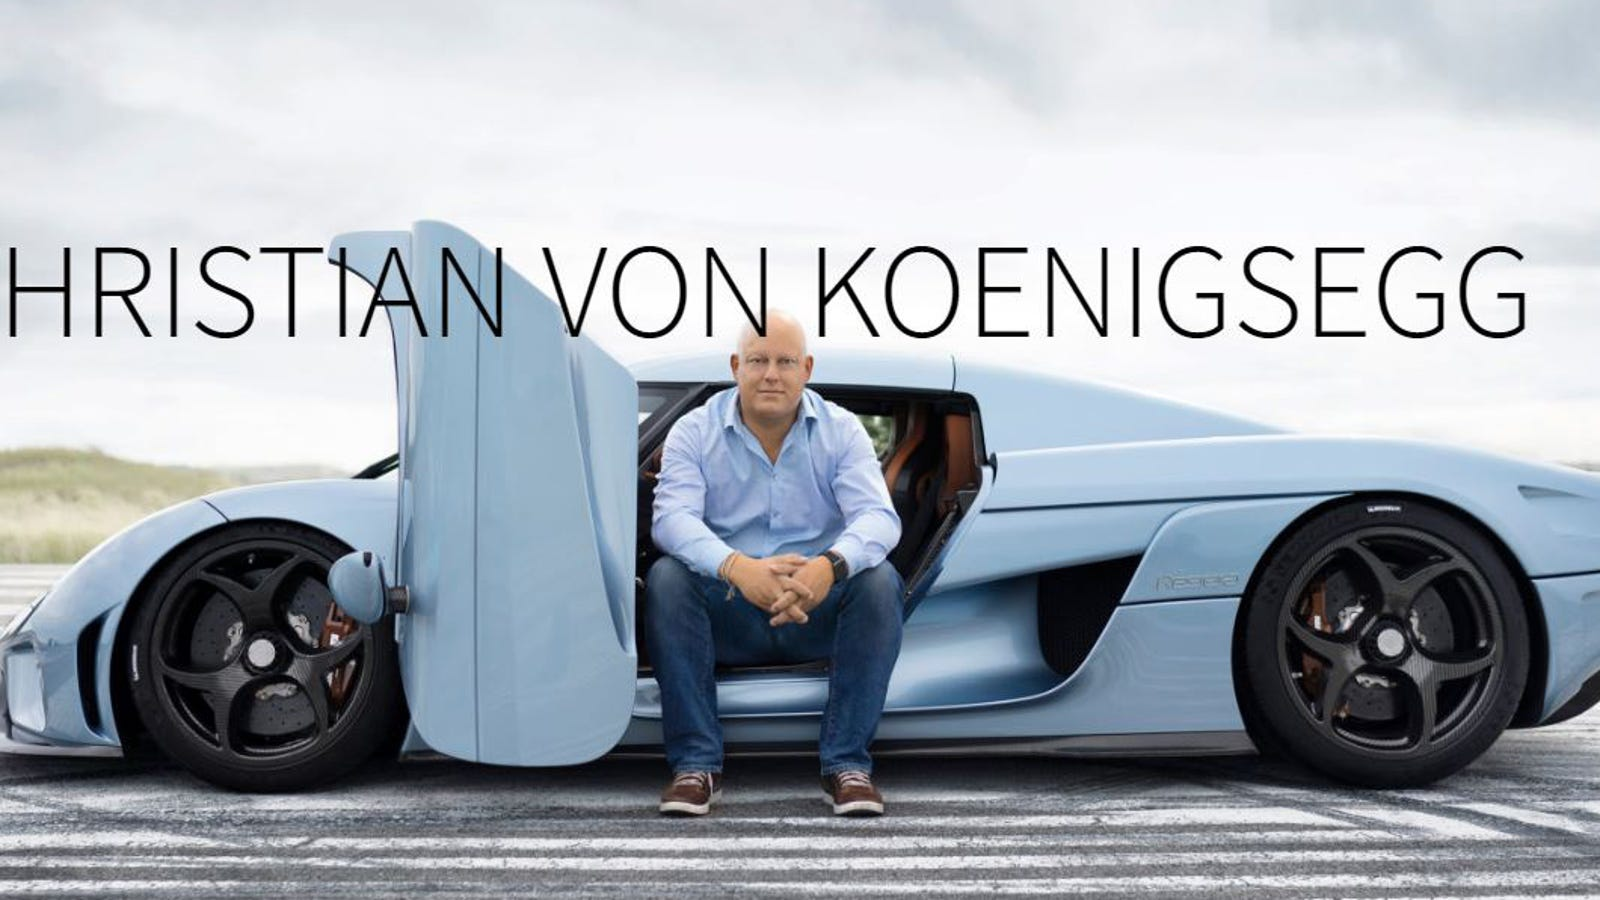 koenigsegg regera jalopnik with Christian Von Koenigsegg Specs His 1 9 Million Superca 1793712626 on The Koenigsegg One 1 Is Swedens 280 Mph Carbon Fiber H 1532088783 furthermore Koenigseggs Mad Genius Ceo Can Track Every Koenigsegg C 1793302038 as well Christian Von Koenigsegg Specs His 1 9 Million Superca 1793712626 also Showthread likewise The Koenigsegg Regera Is Still The Craziest Car Of 2015 1713112110.